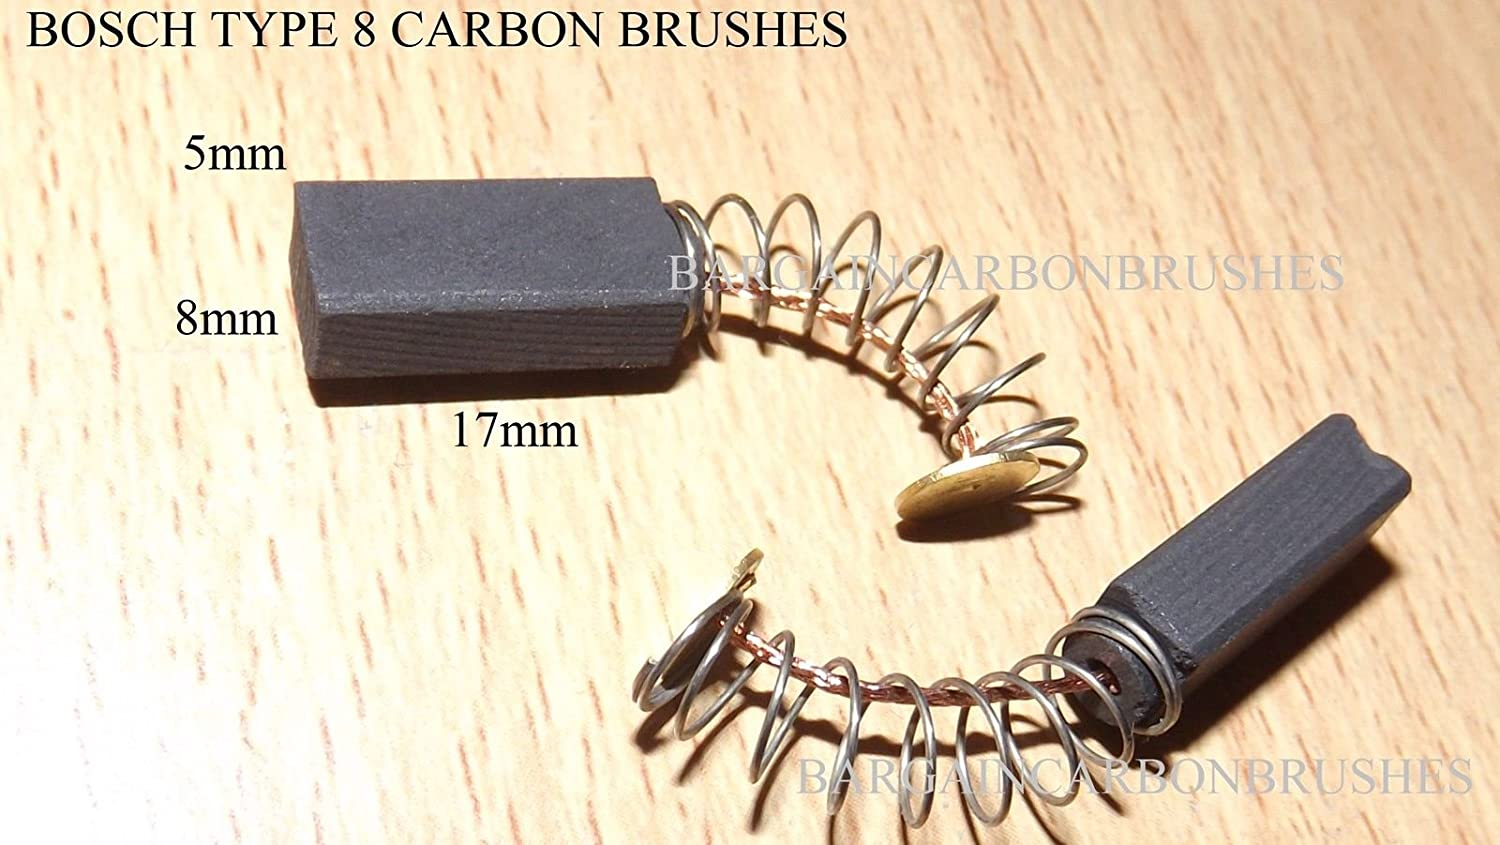 BOSCH CARBON BRUSHES PSB 750-2RE PSB 600 RE PSB 650 816//04 607014 2604321930 BS4